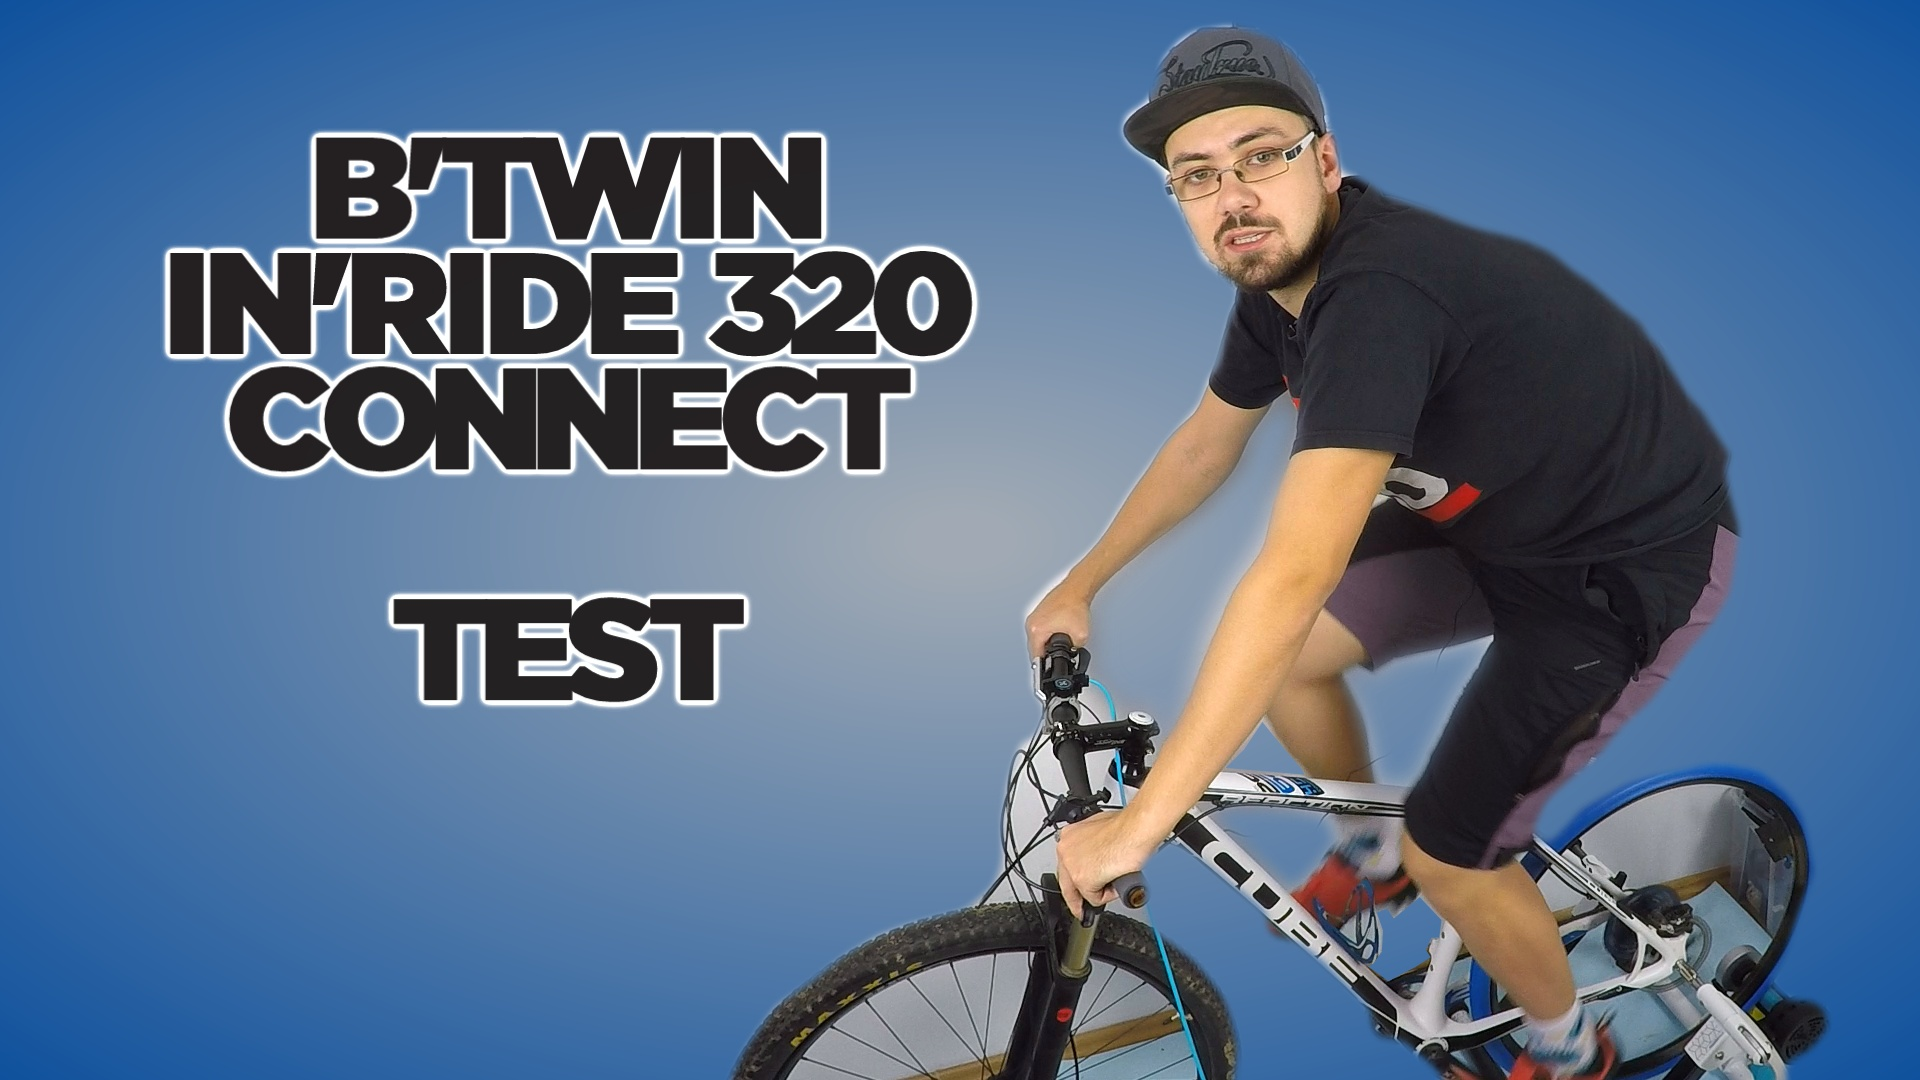 Trenażer rowerowy B'TWIN In'ride 320 connect